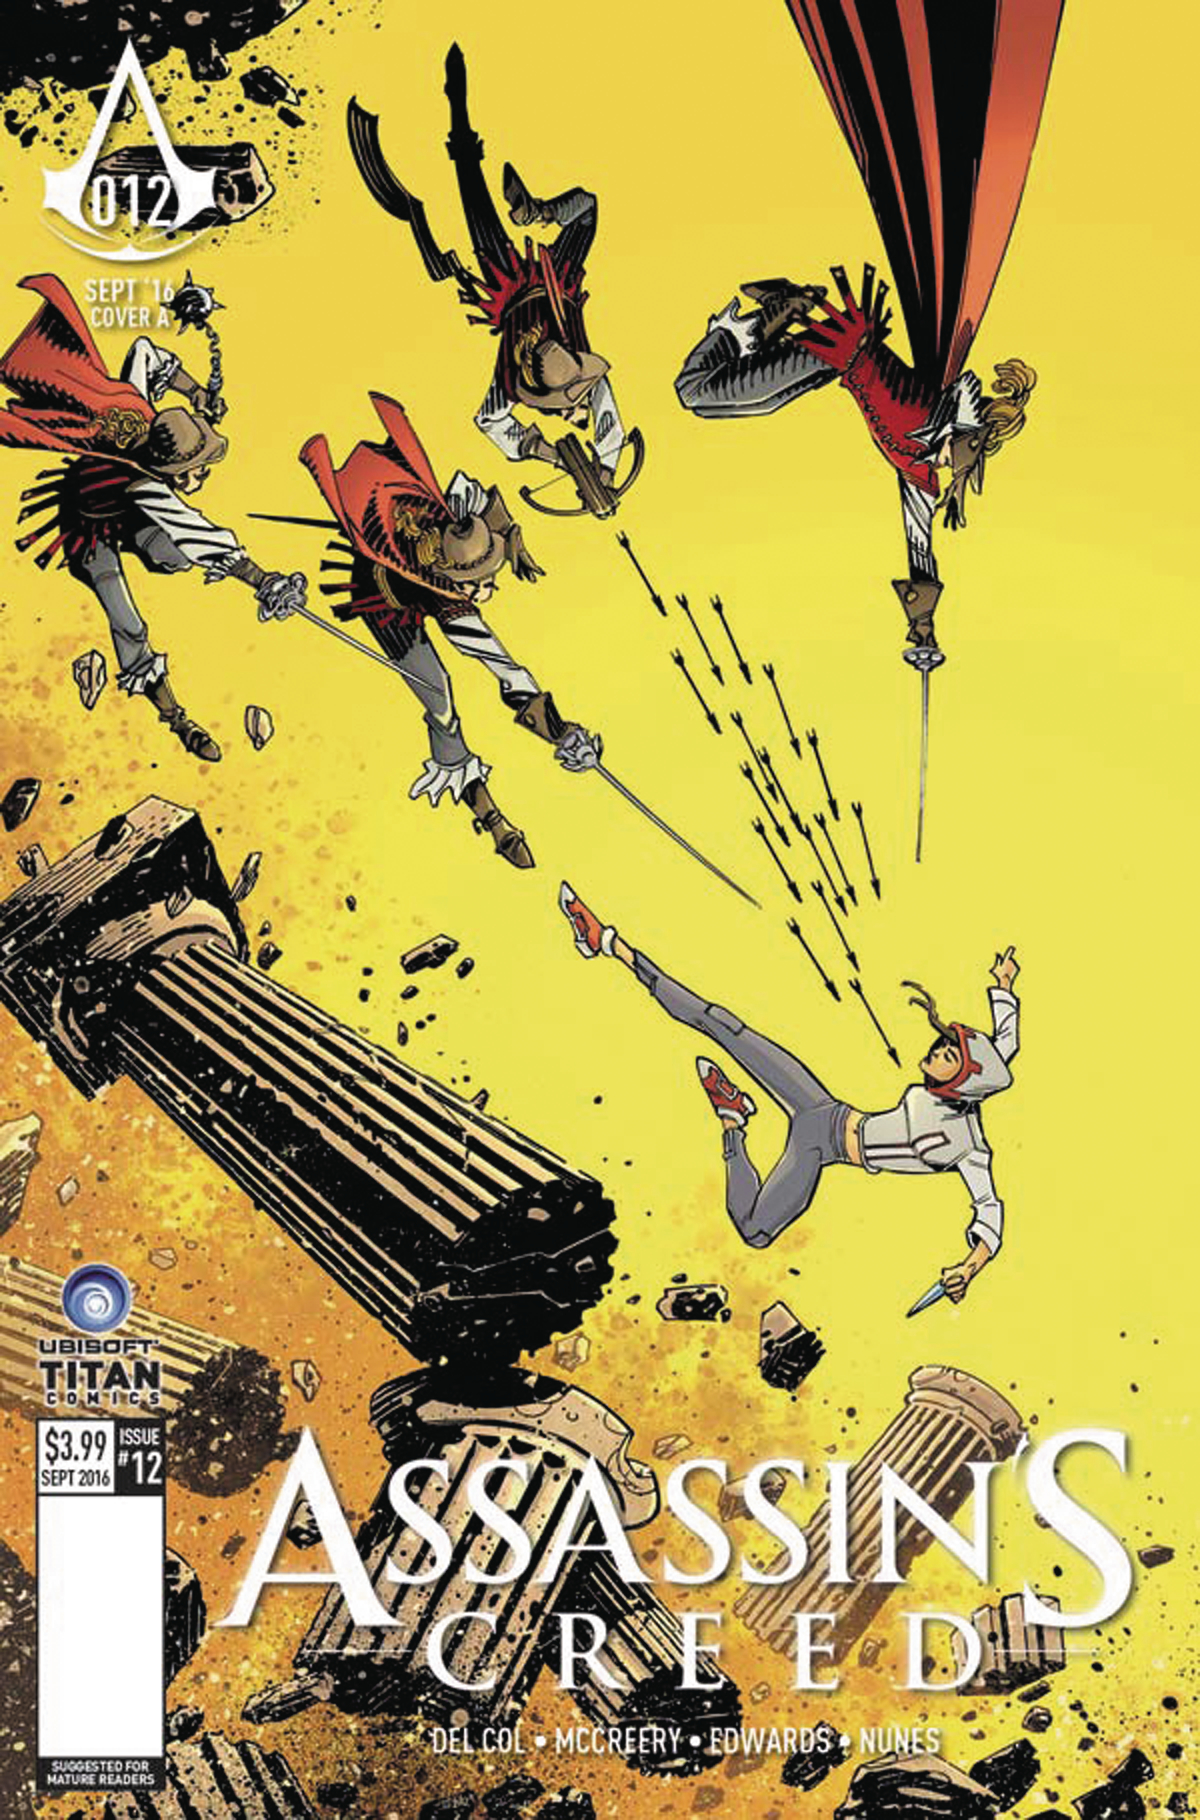 ASSASSINS CREED #12 CVR A MCCREA (MR)